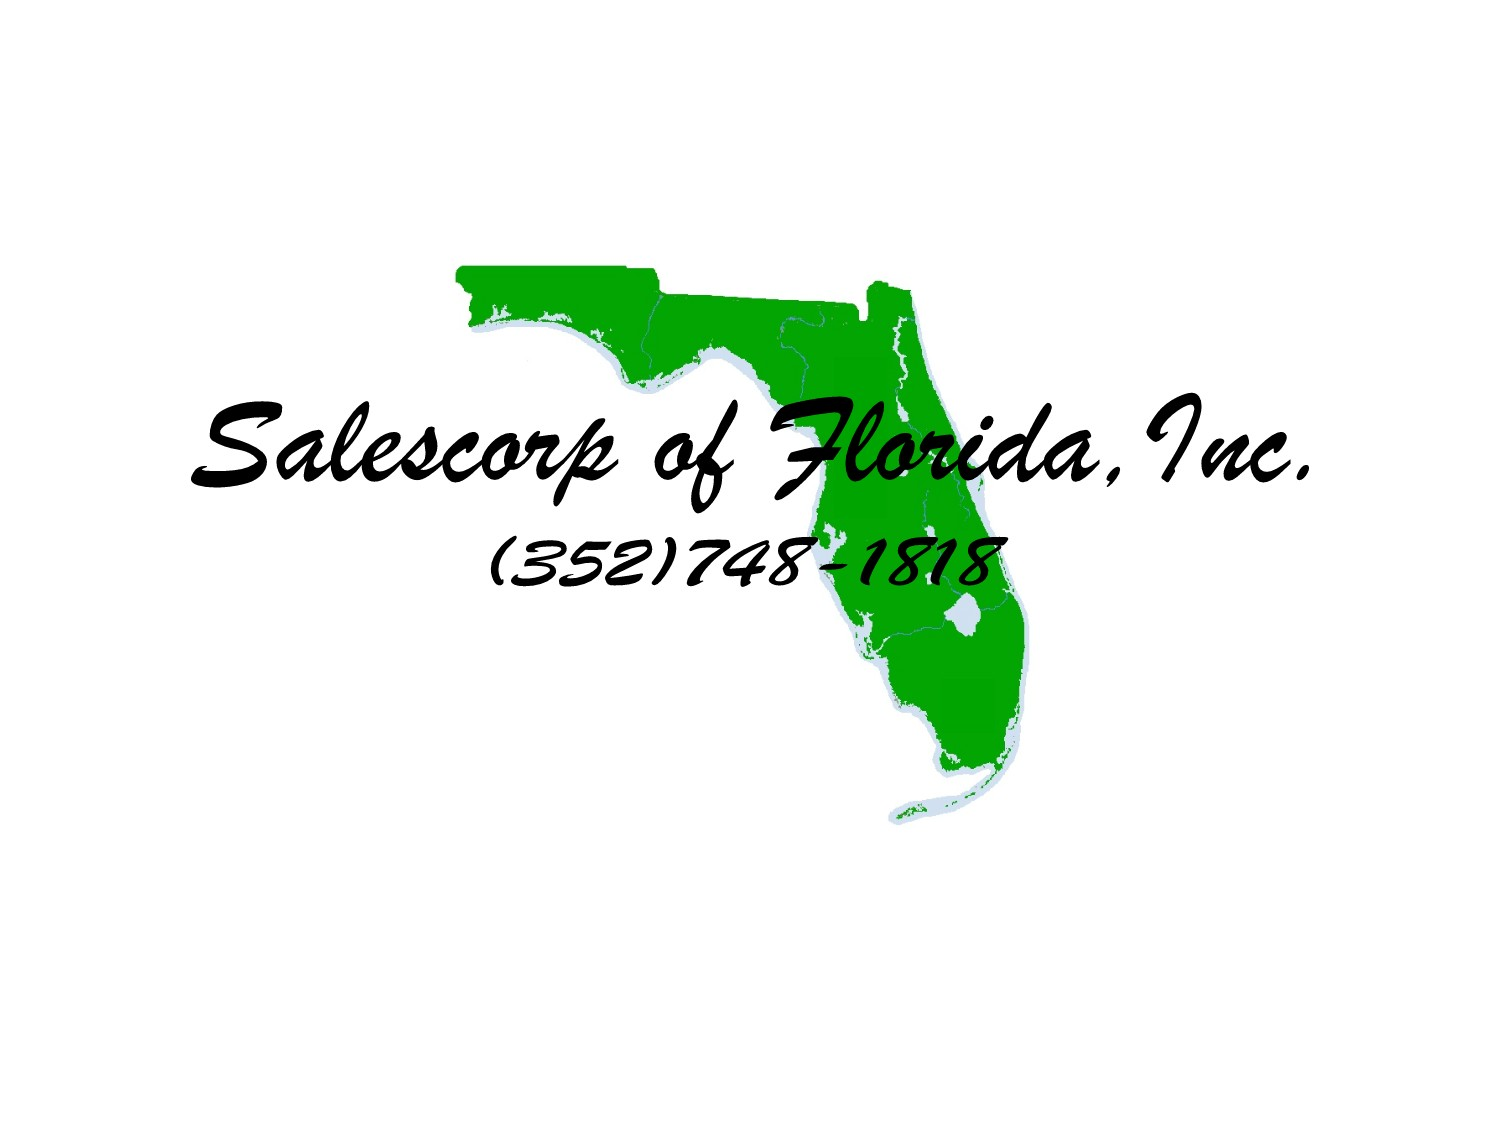 Salescorp of Florida, Inc.